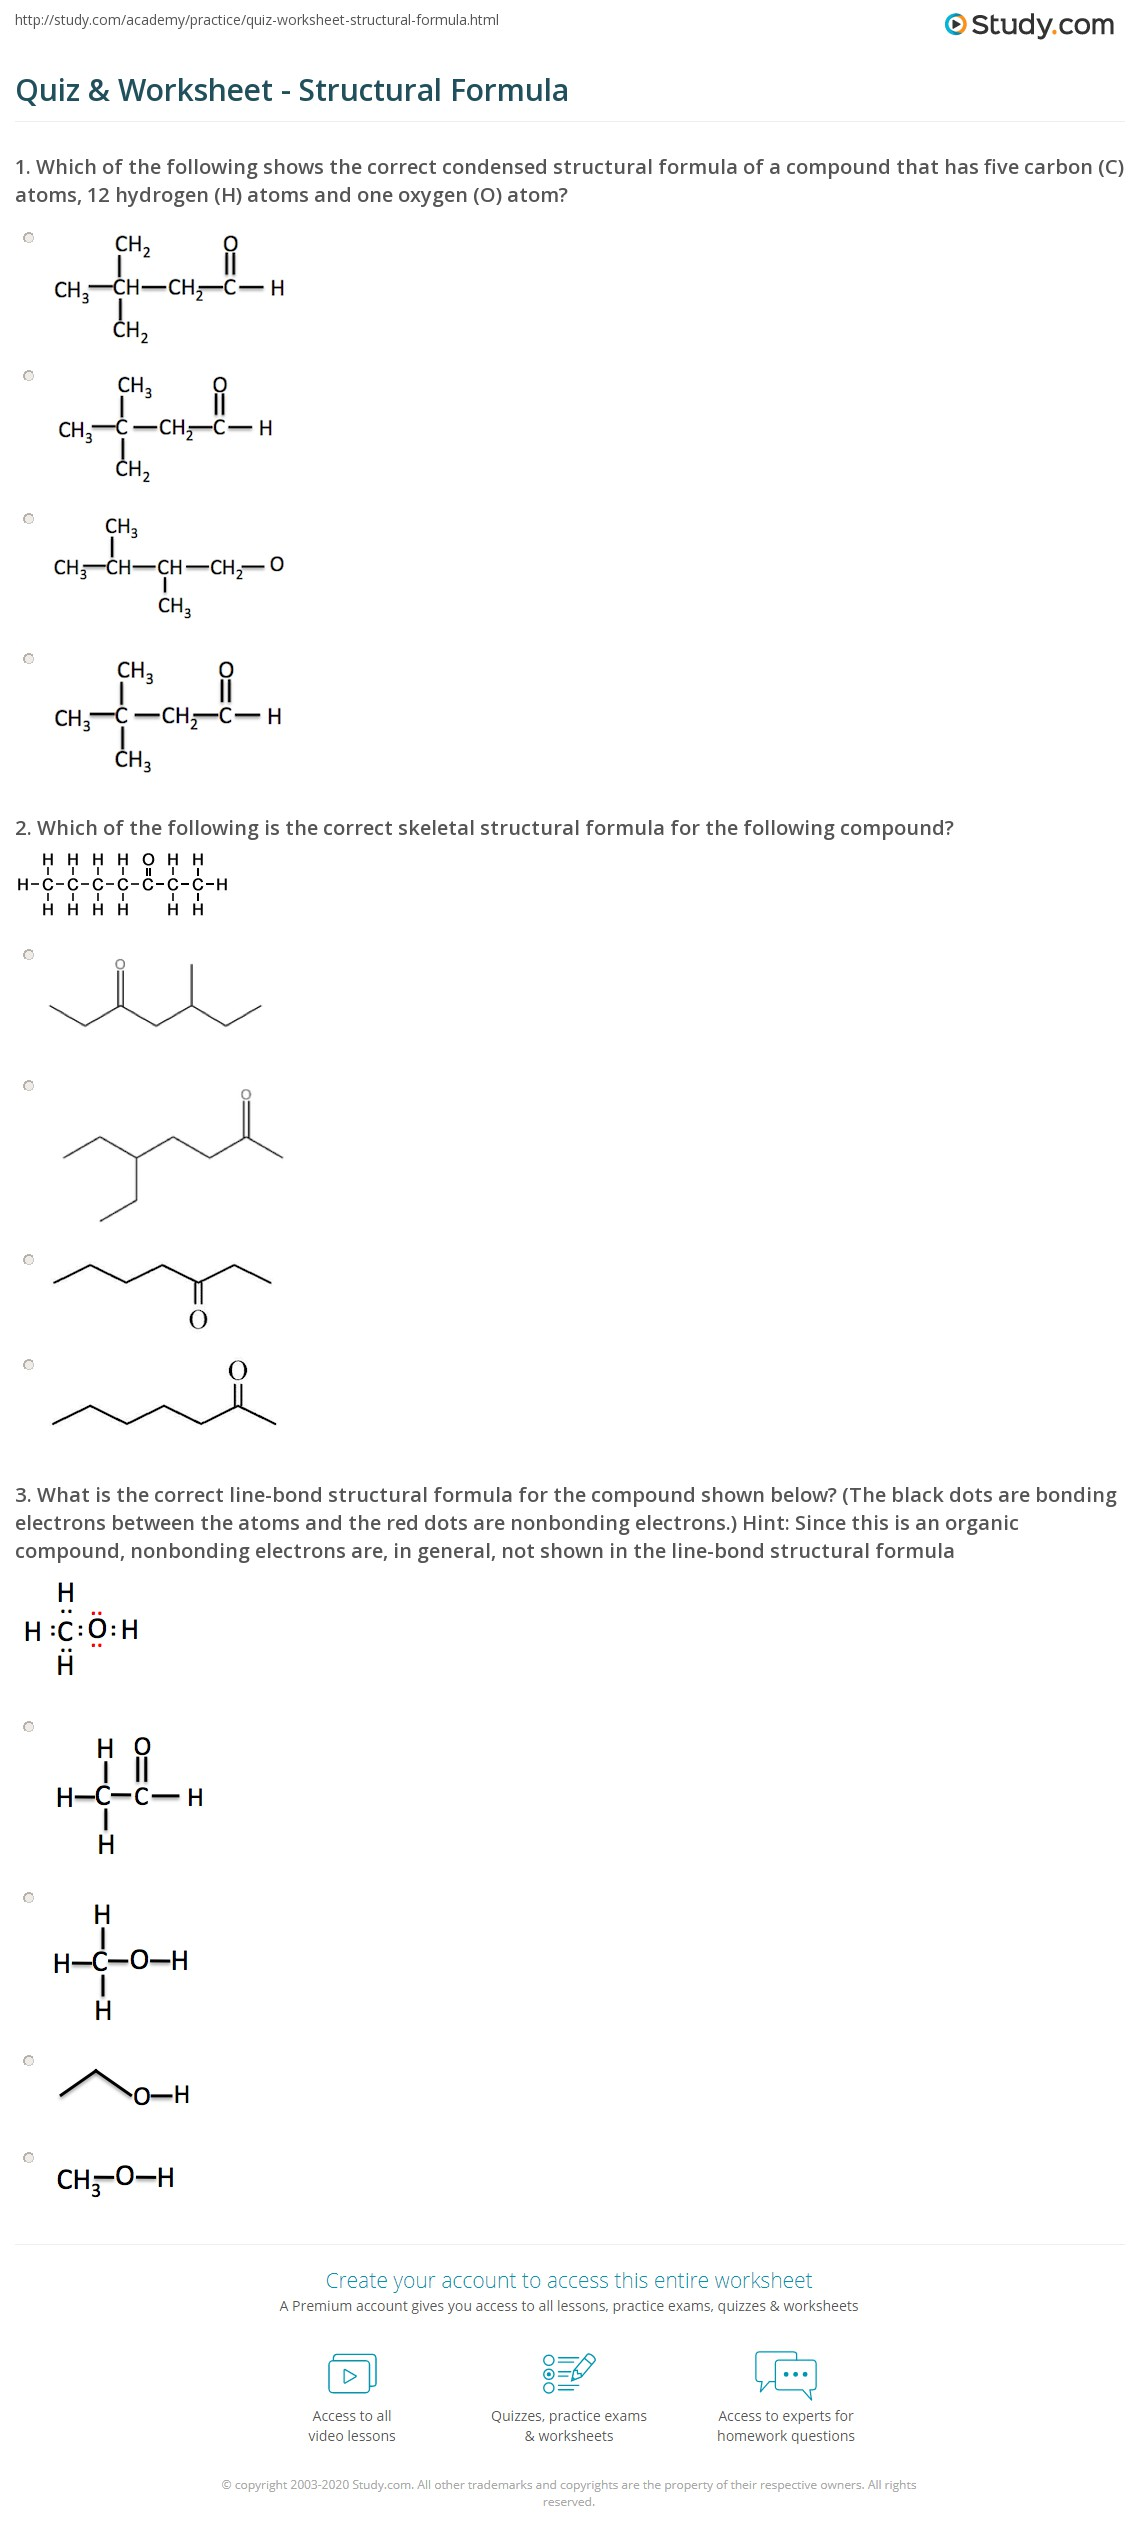 Hydrocarbon Nomenclature Worksheet Answers